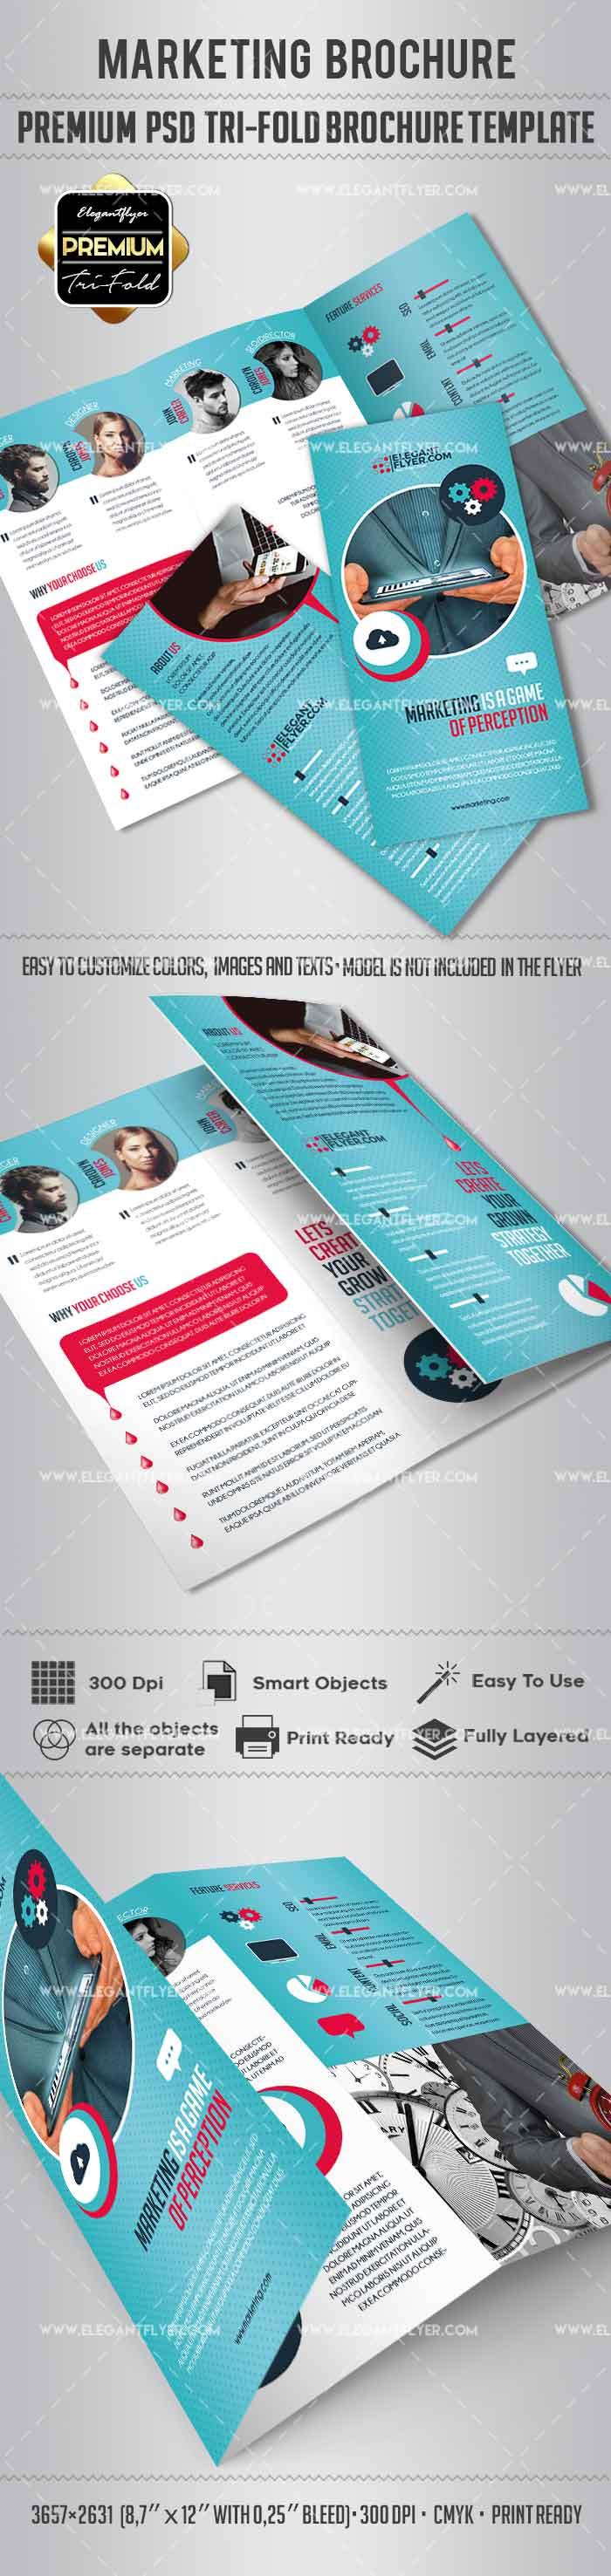 Tri fold brochure for marketing by elegantflyer for Marketing brochure templates free